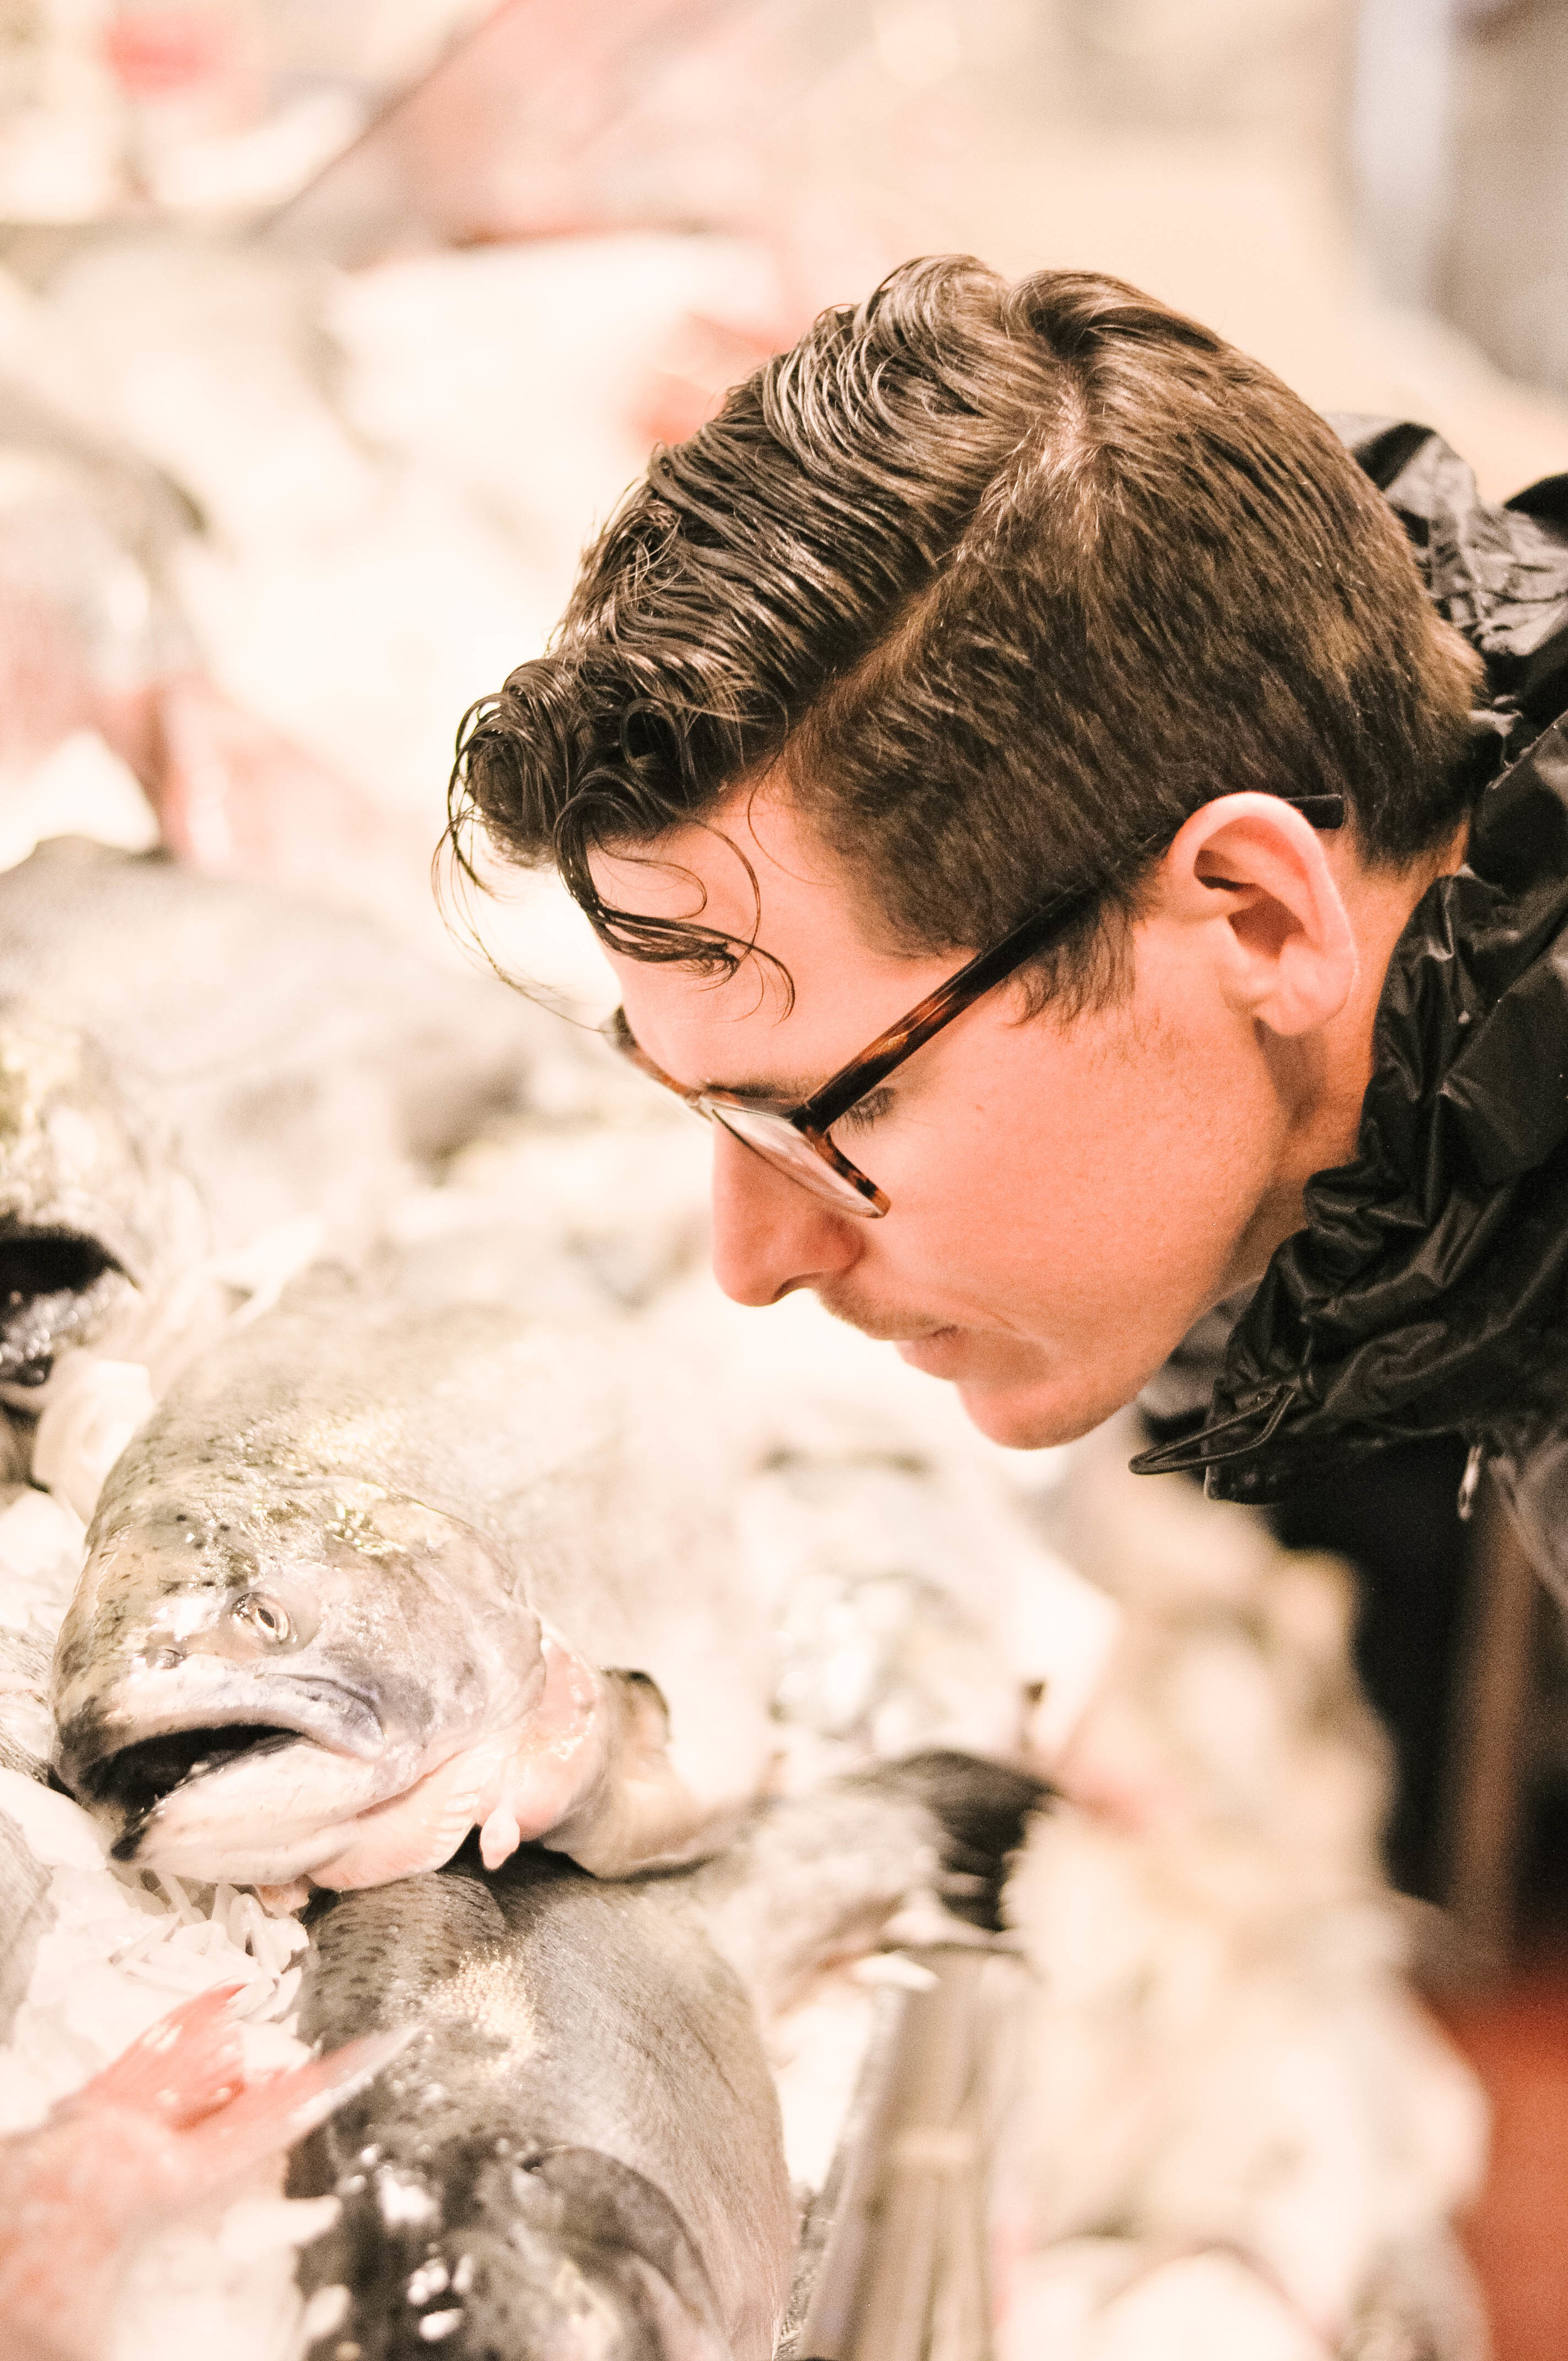 Man in glasses at Seattle fish market